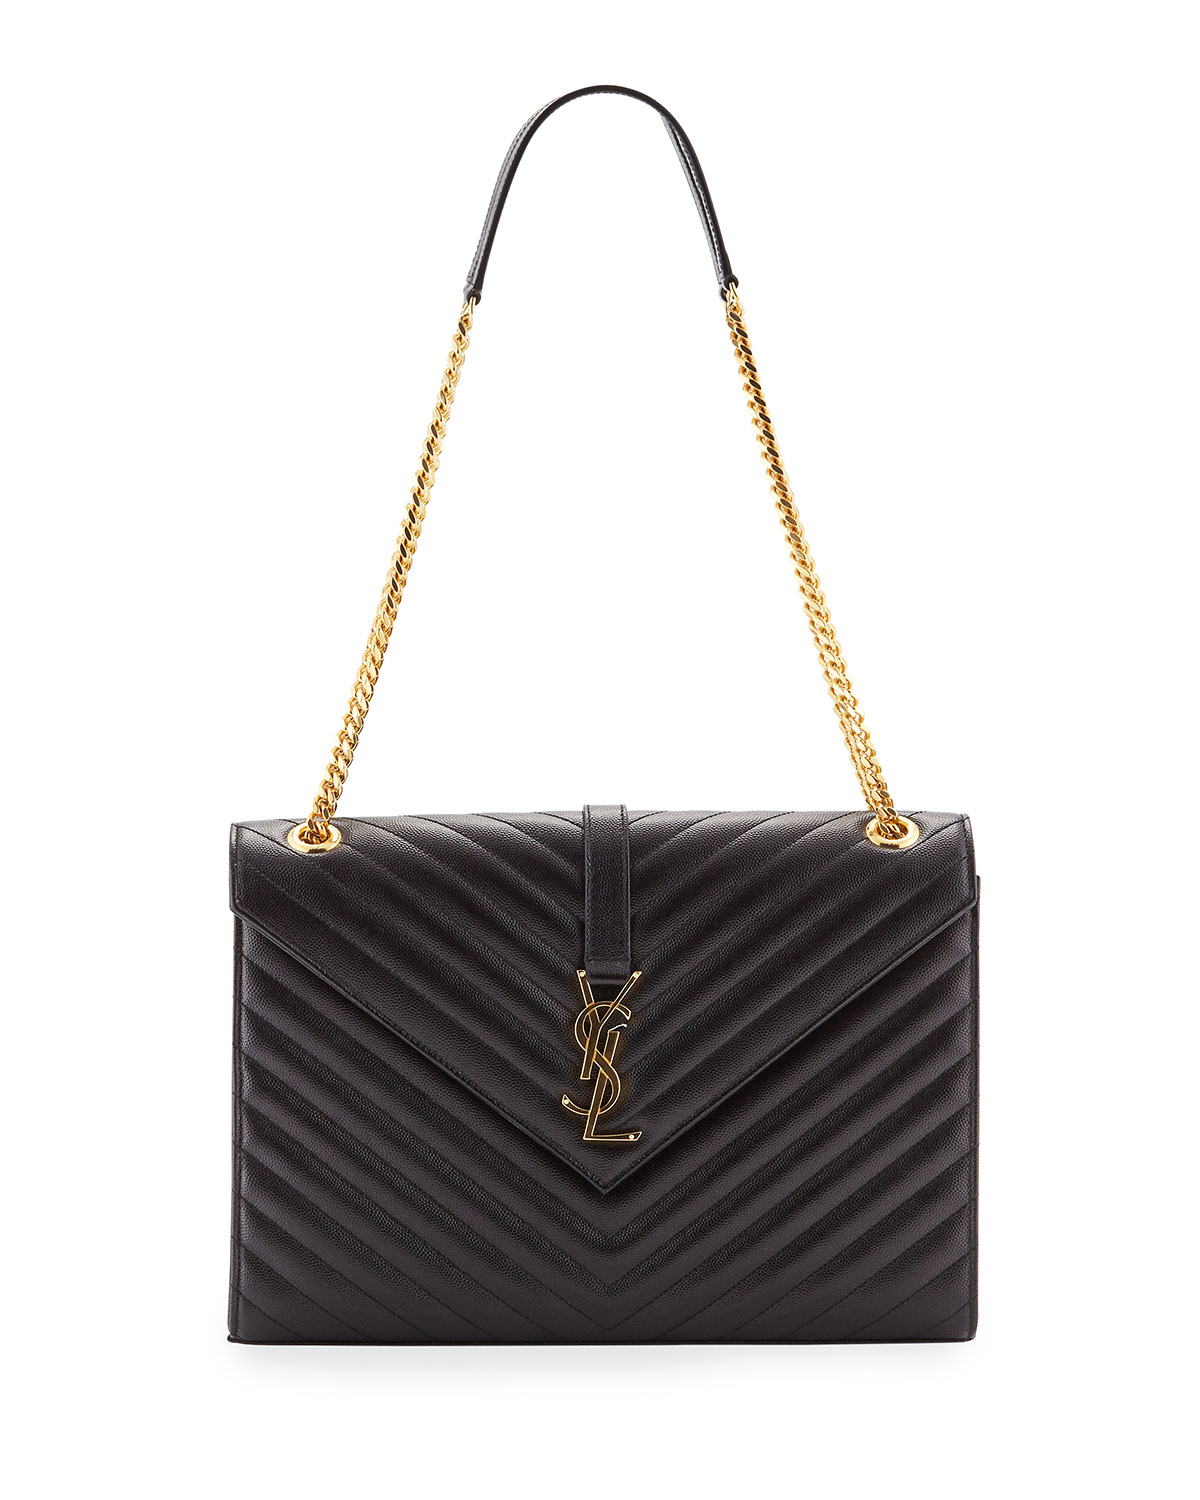 Saint Laurent V Flap Large Monogram Ysl Envelope Chain